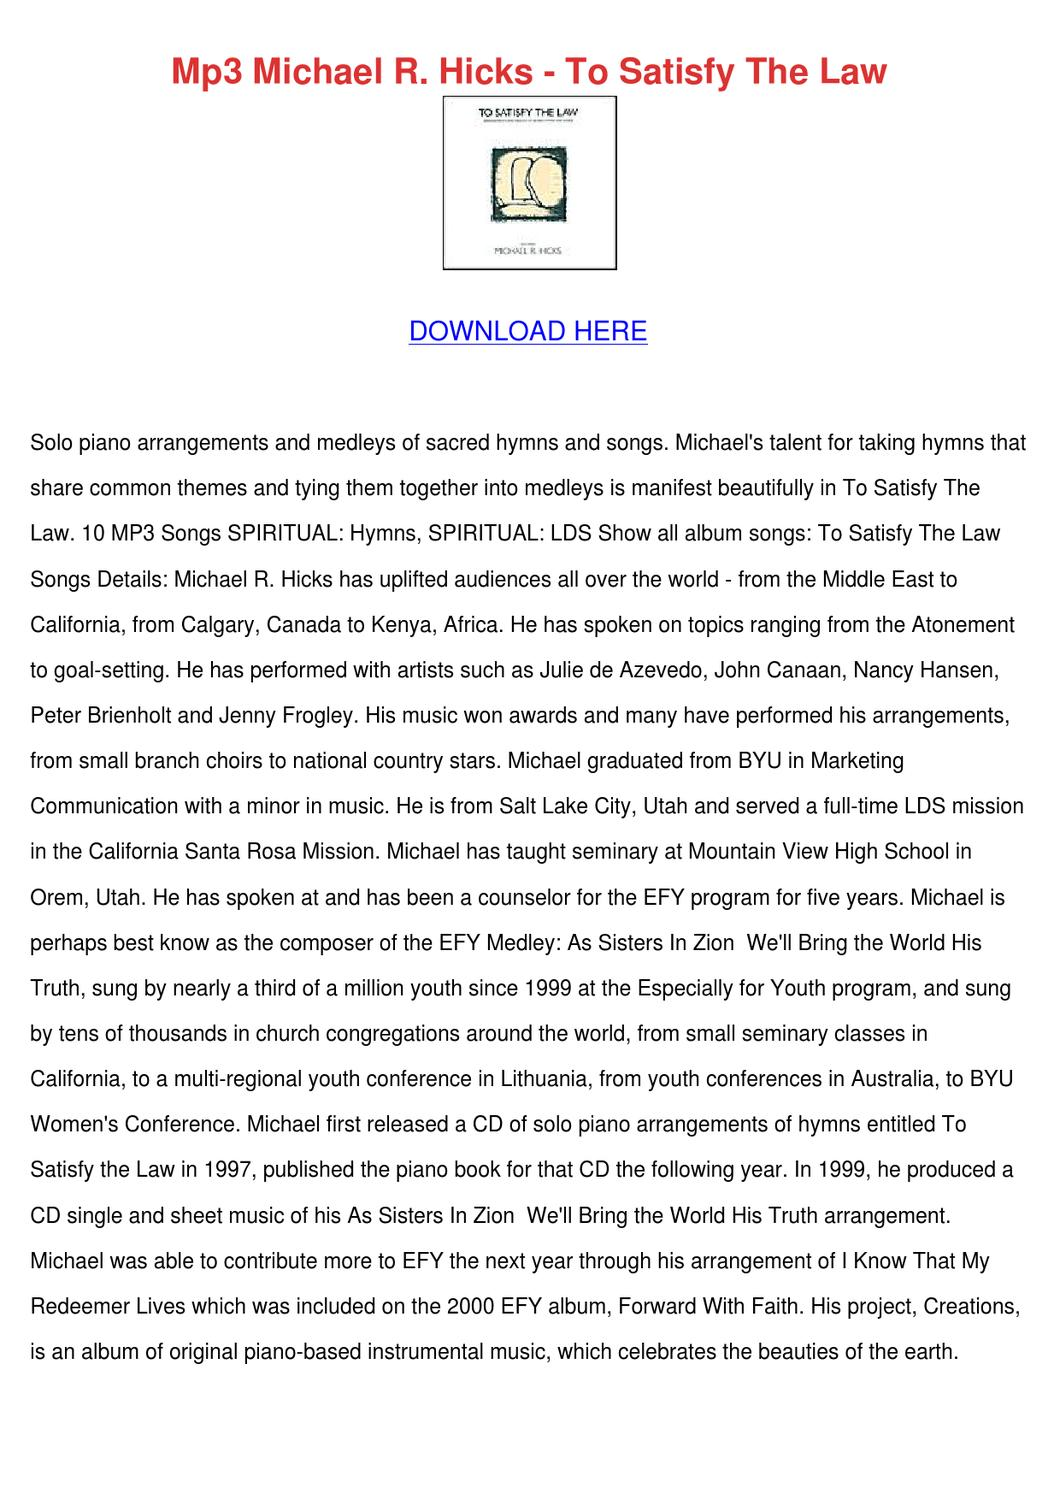 Mp3 Michael R Hicks To Satisfy The Law by BradleyBaylor - issuu